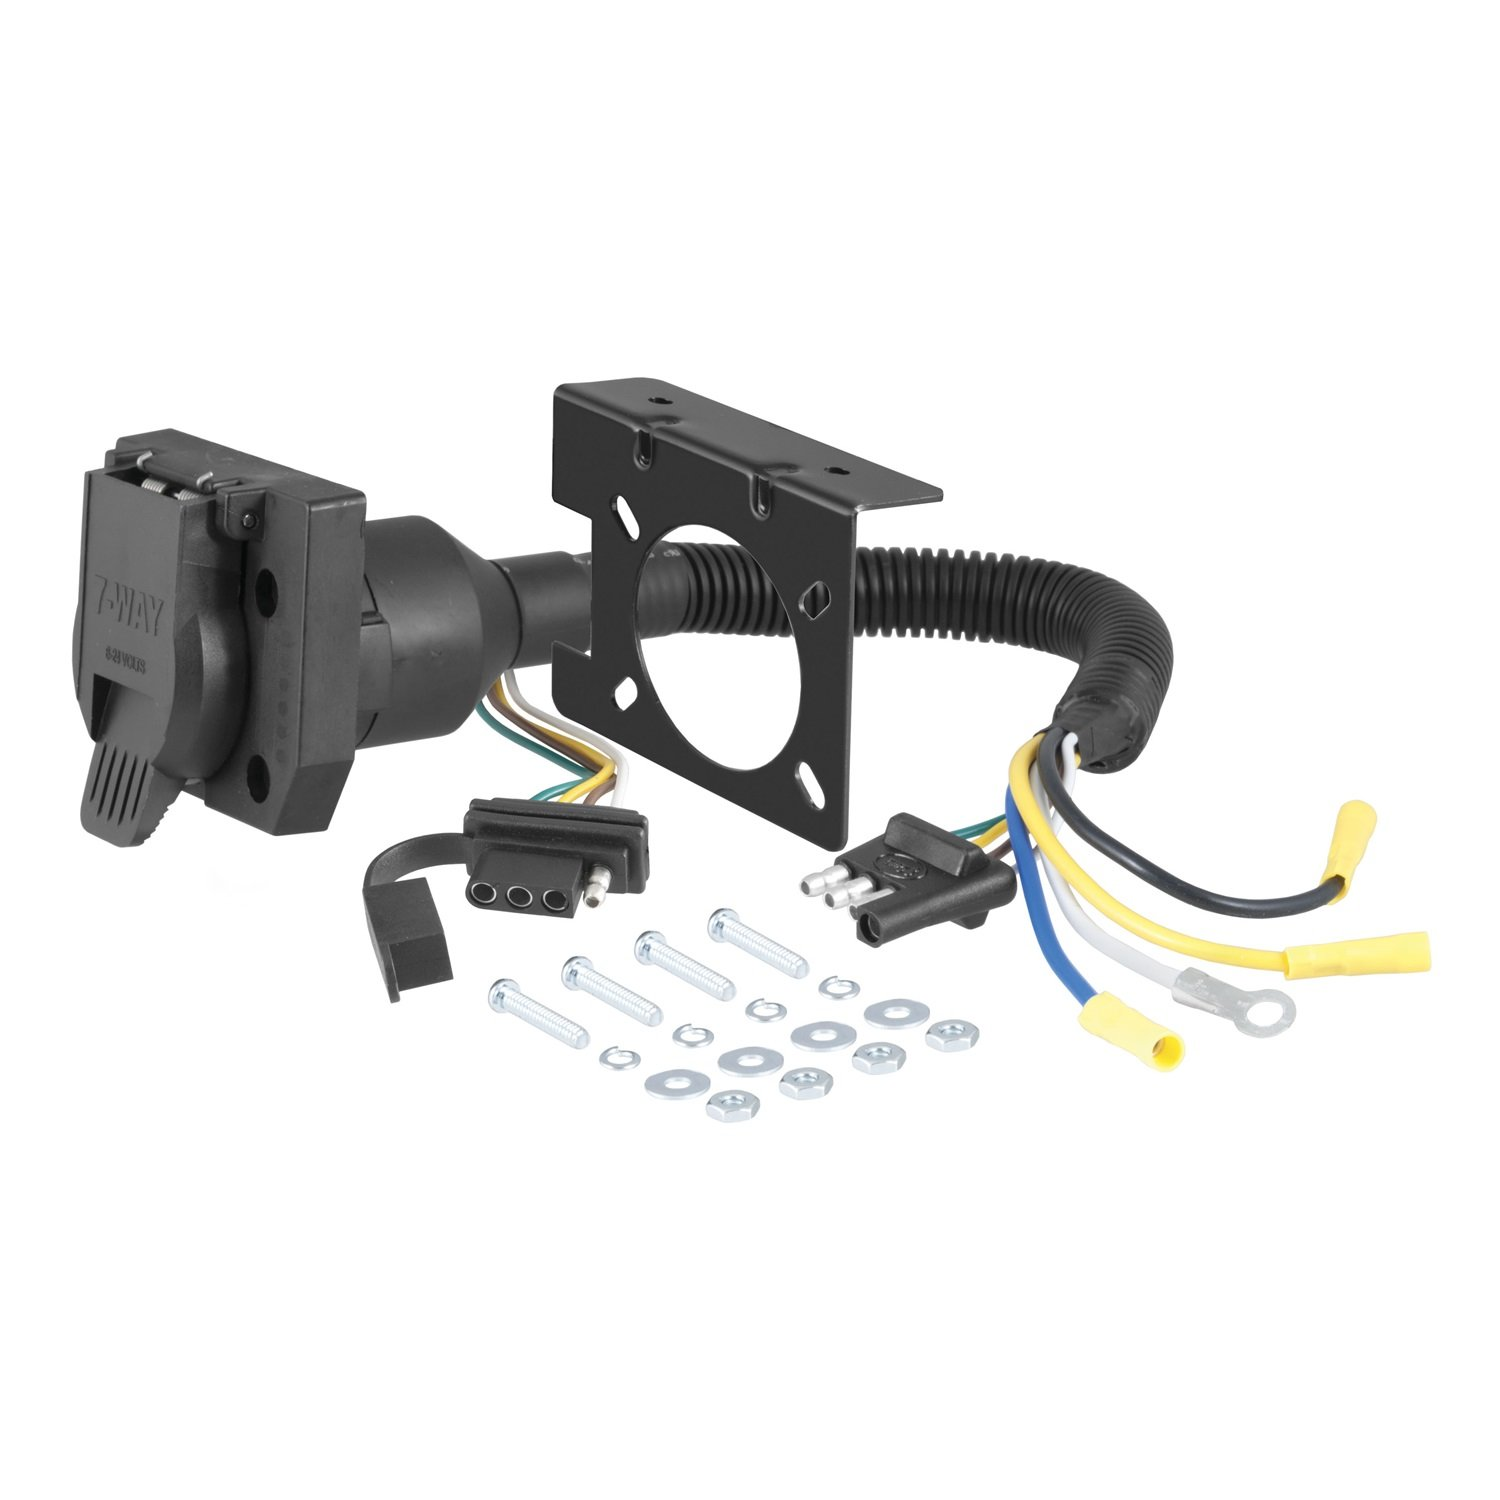 CURT 57672 Dual-Output 4 Flat Vehicle-Side to 7-Way RV Blade Trailer Wiring Adapter by CURT